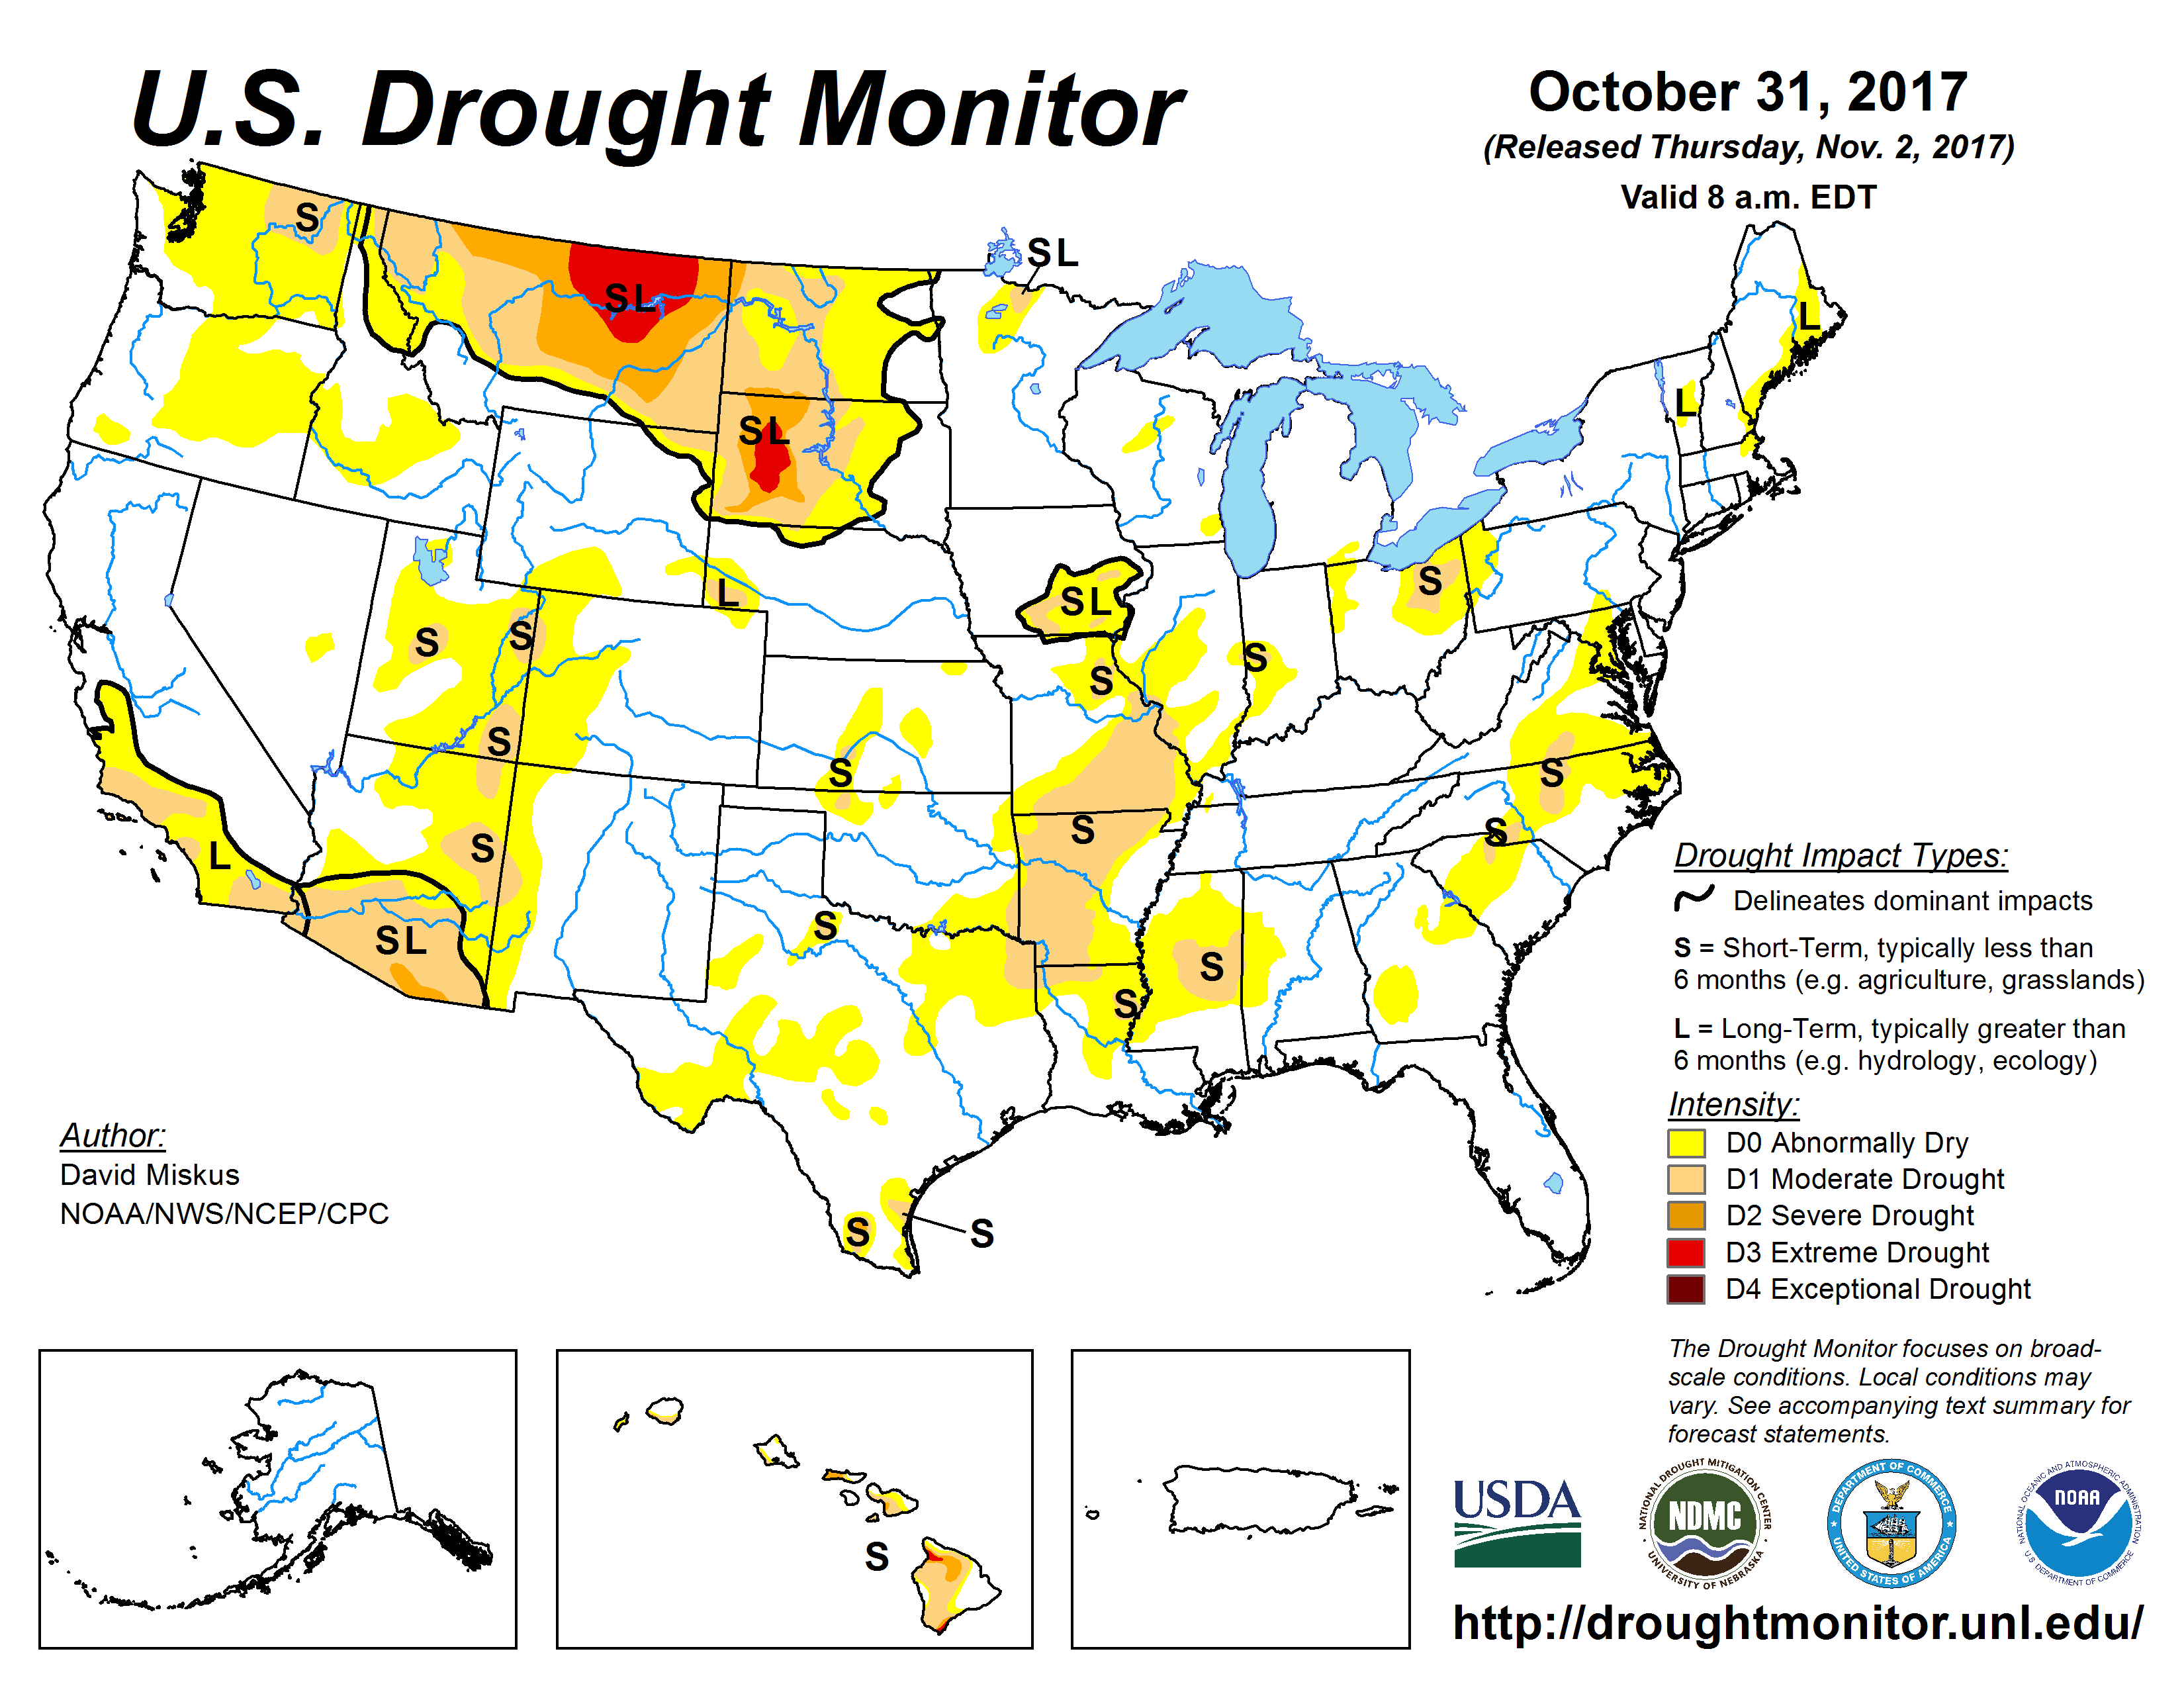 The U.S. Drought Monitor drought map valid October 31, 2017